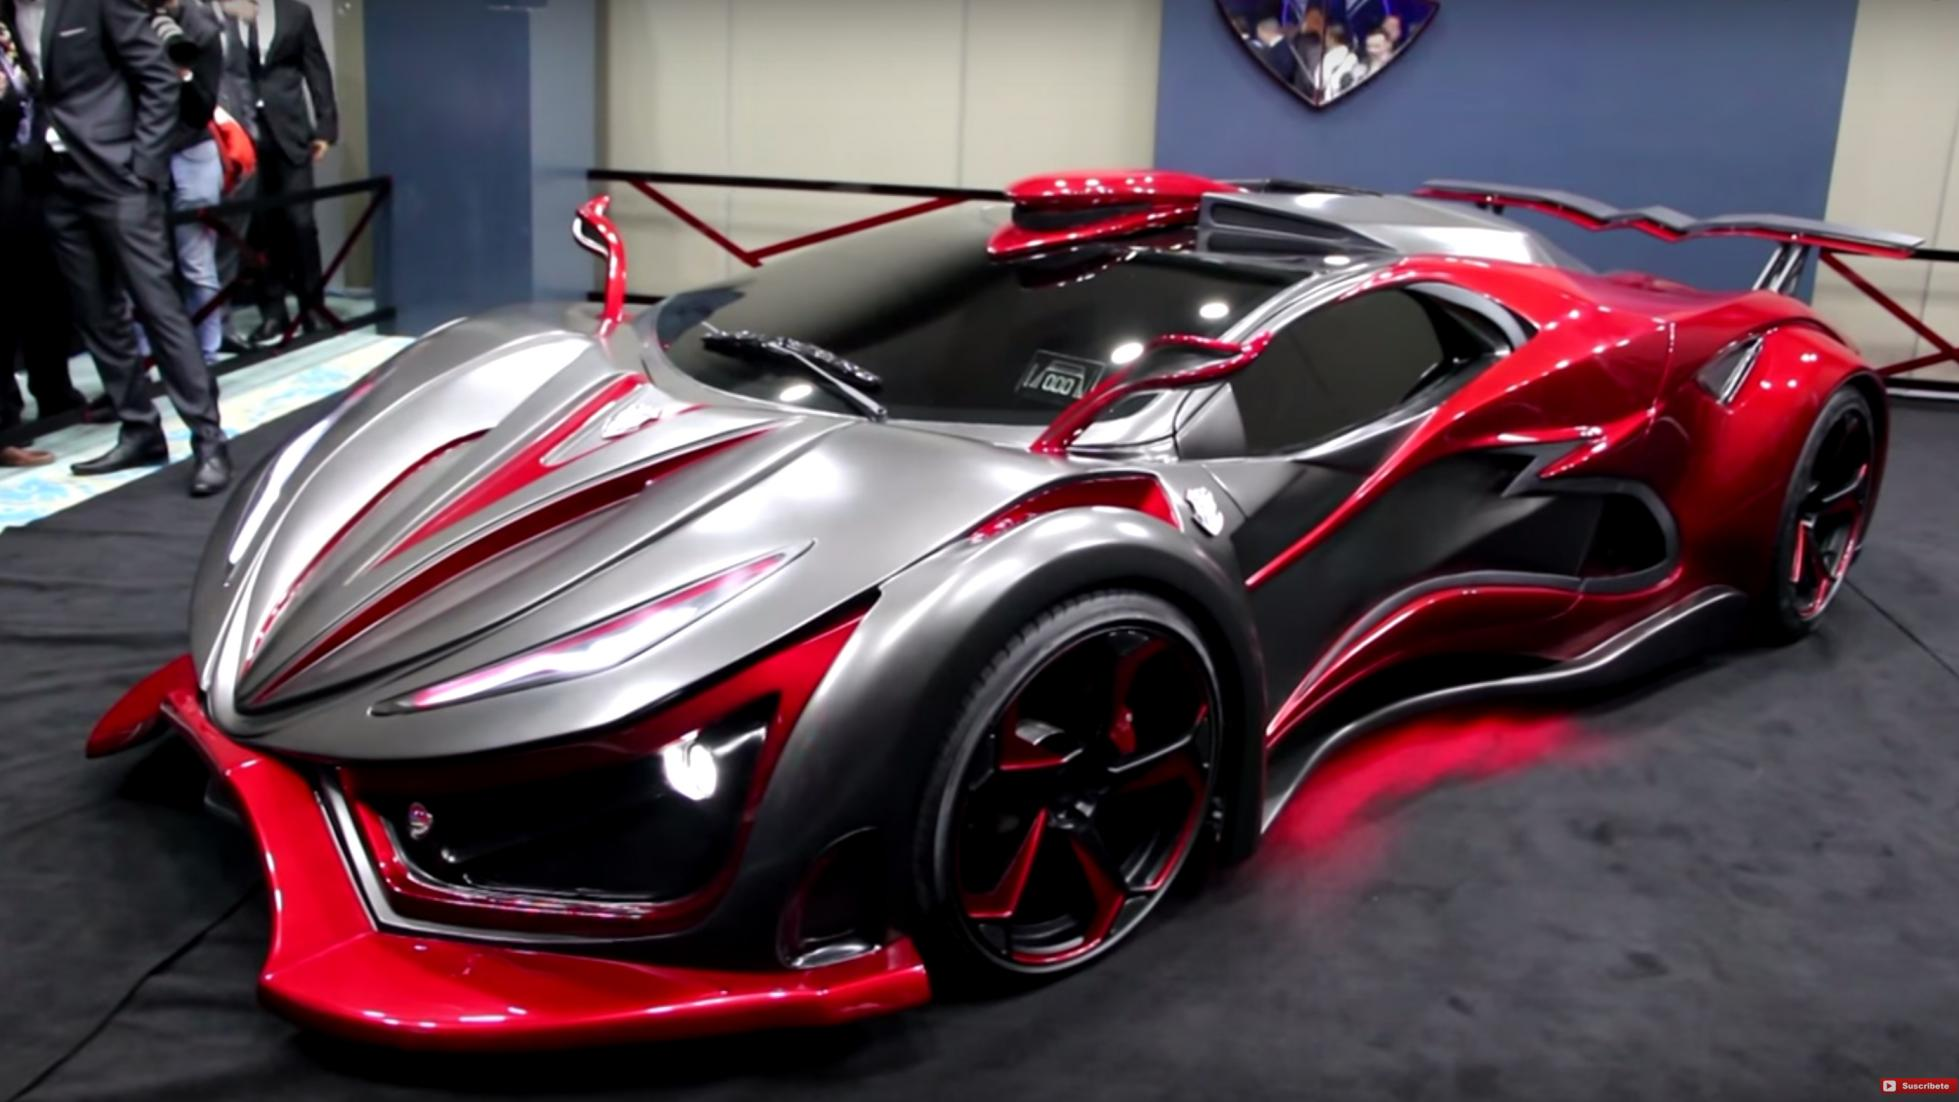 'Inferno' Supercar